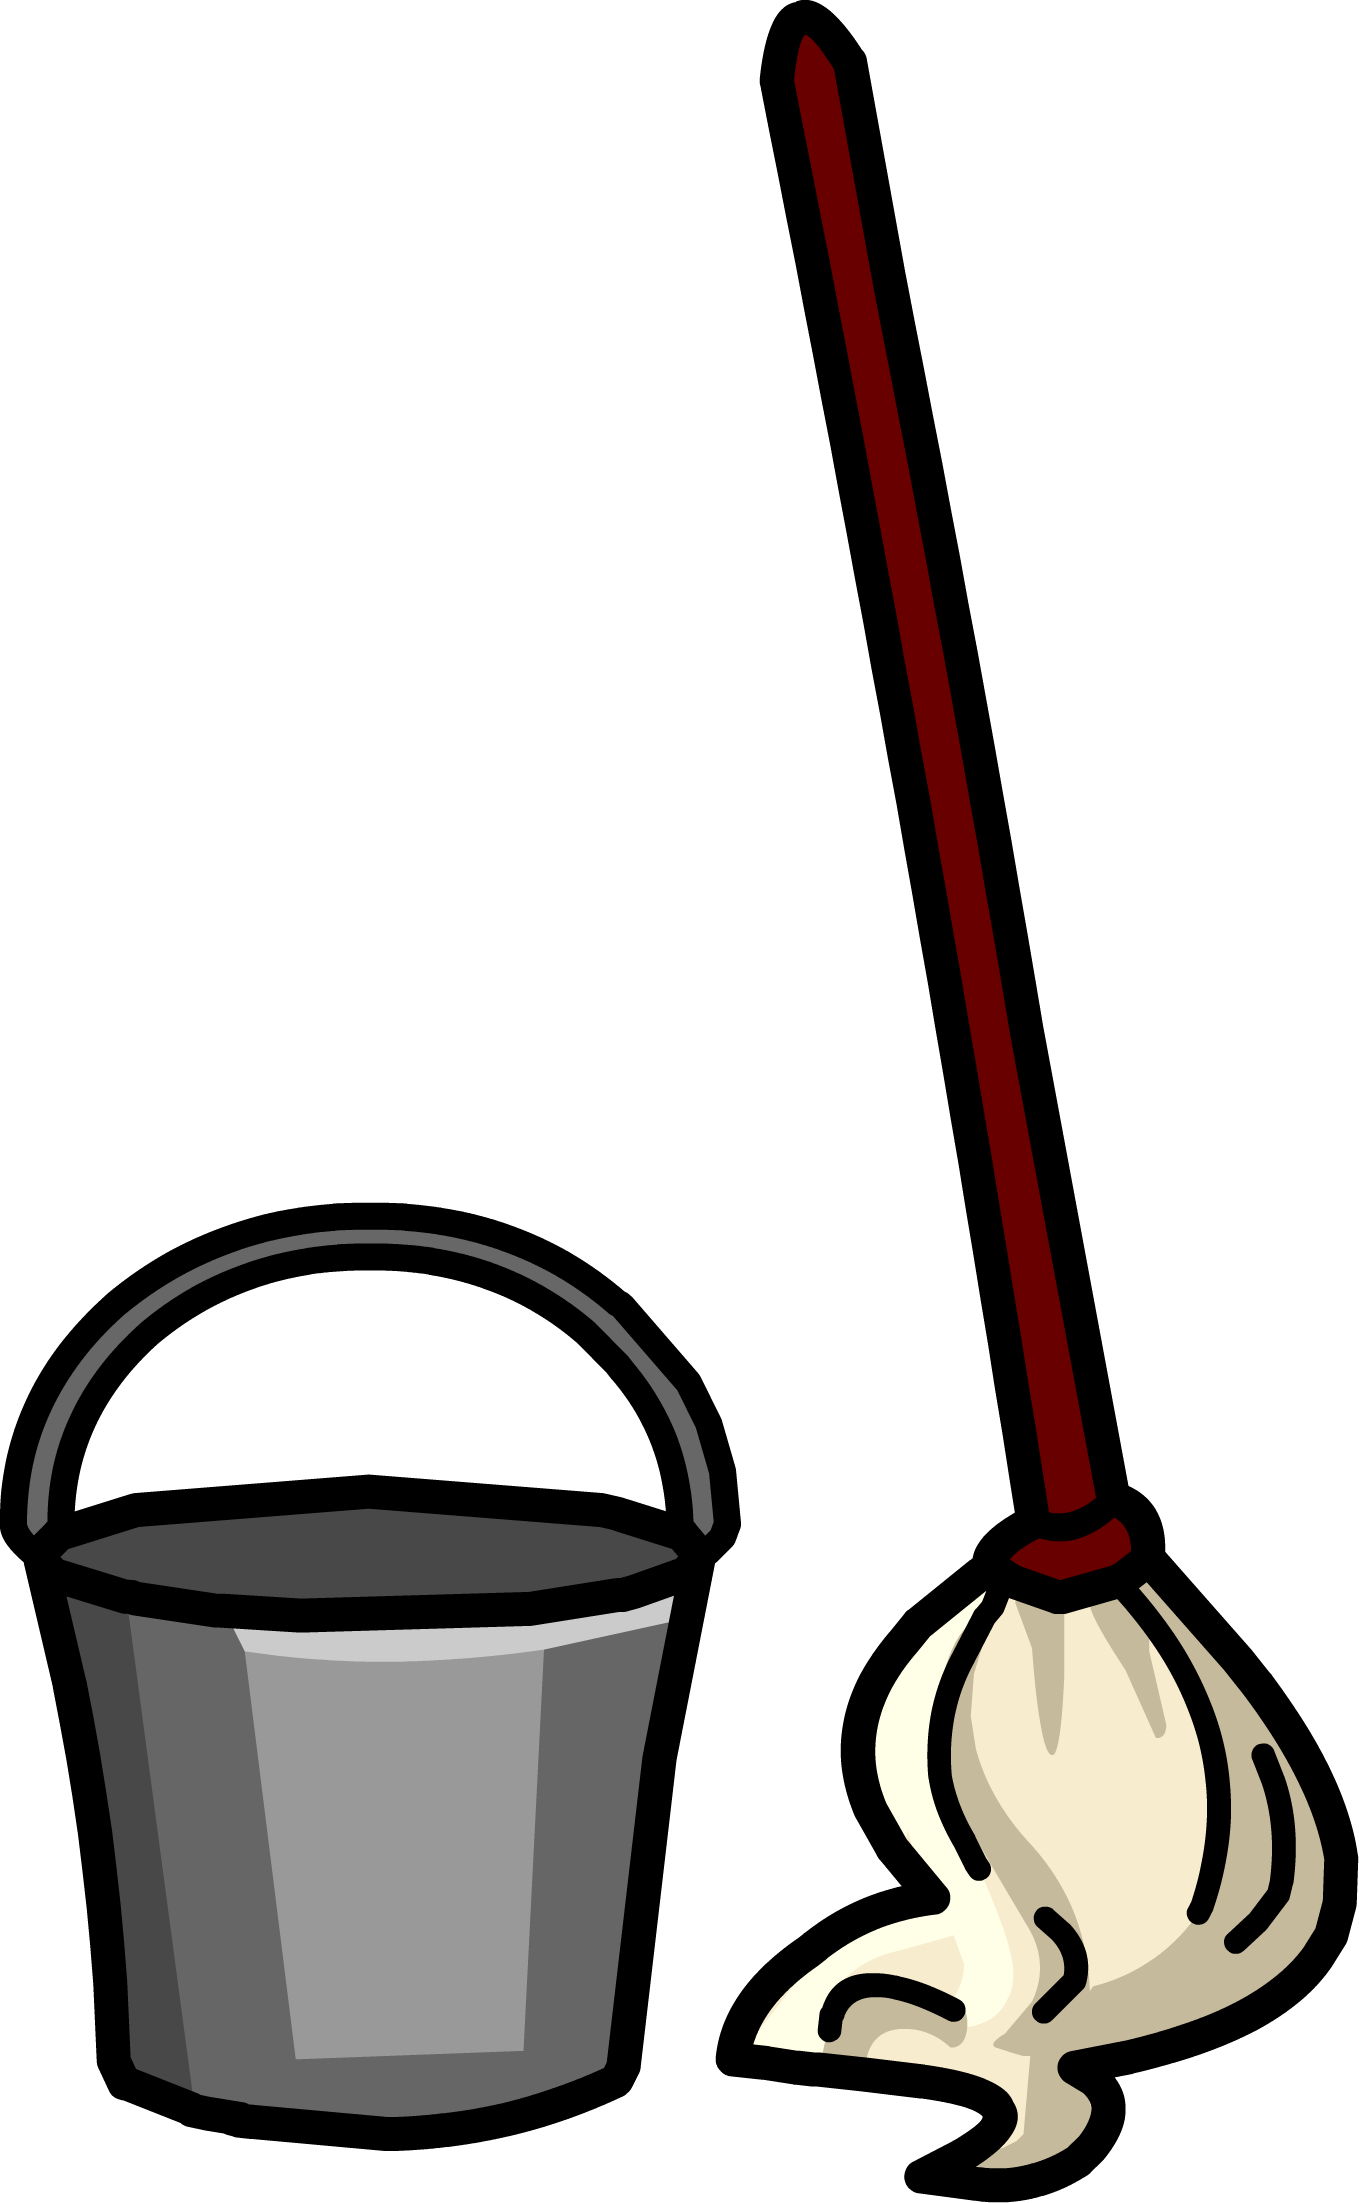 image free stock Image bucket sprite png. Mop clipart.